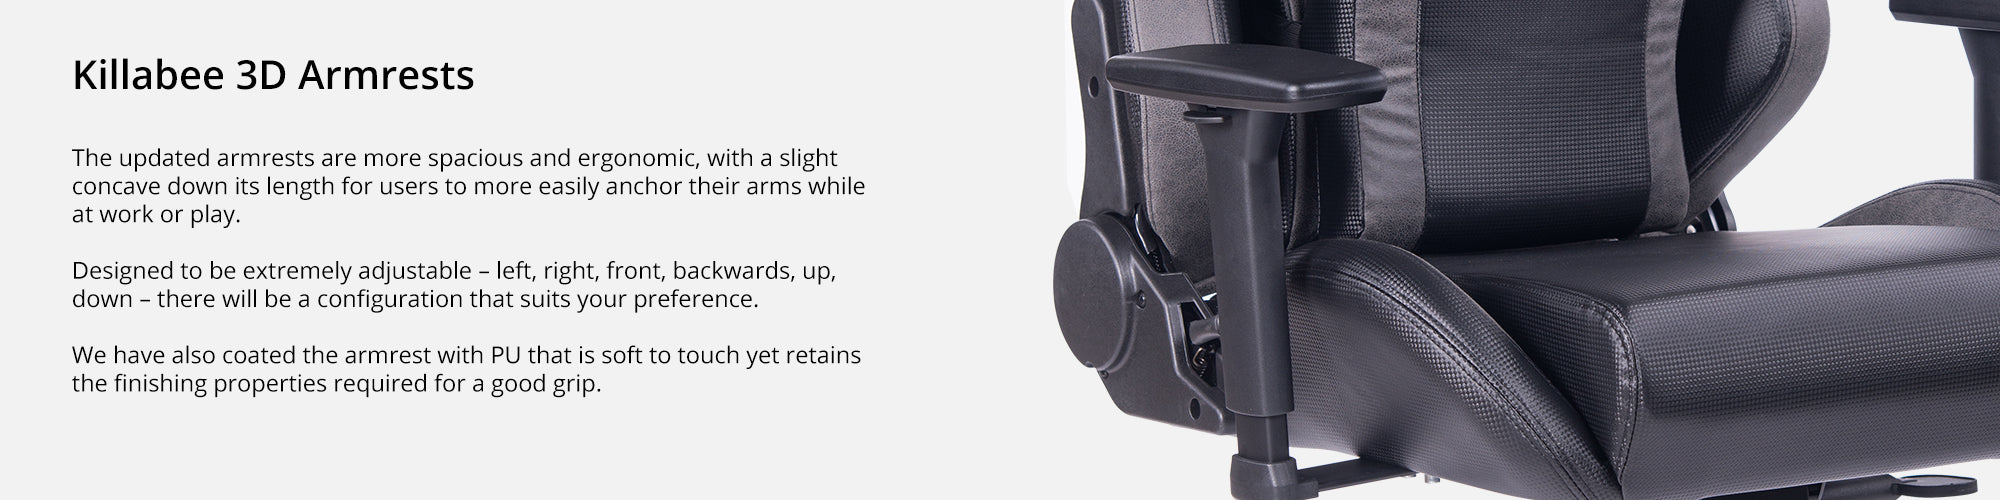 Features (Killabee 3D Armrests)